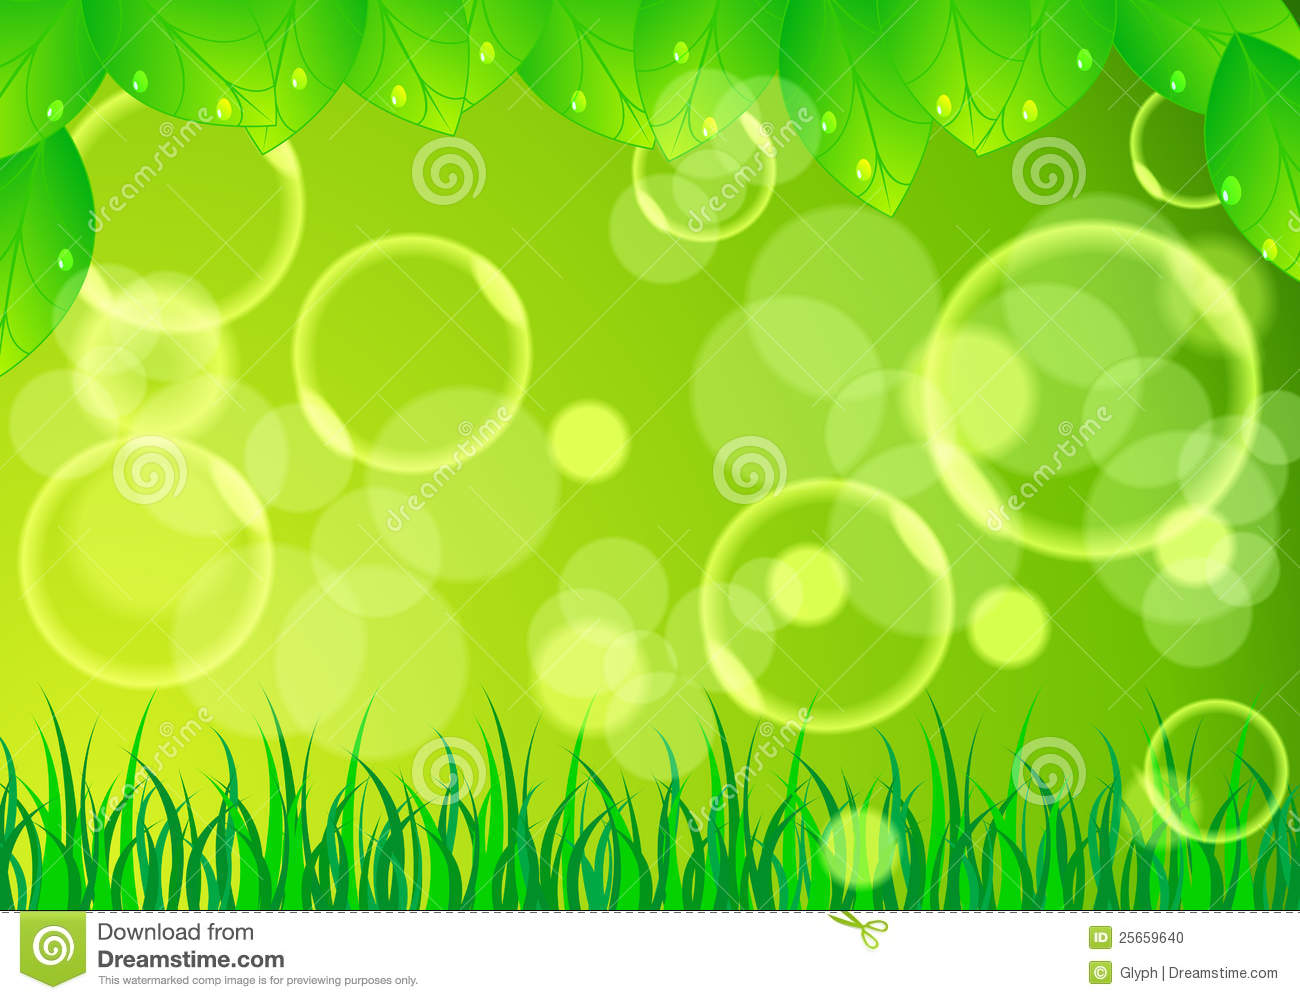 Nature Images 2mb: Beautiful Green Nature Background Stock Photo